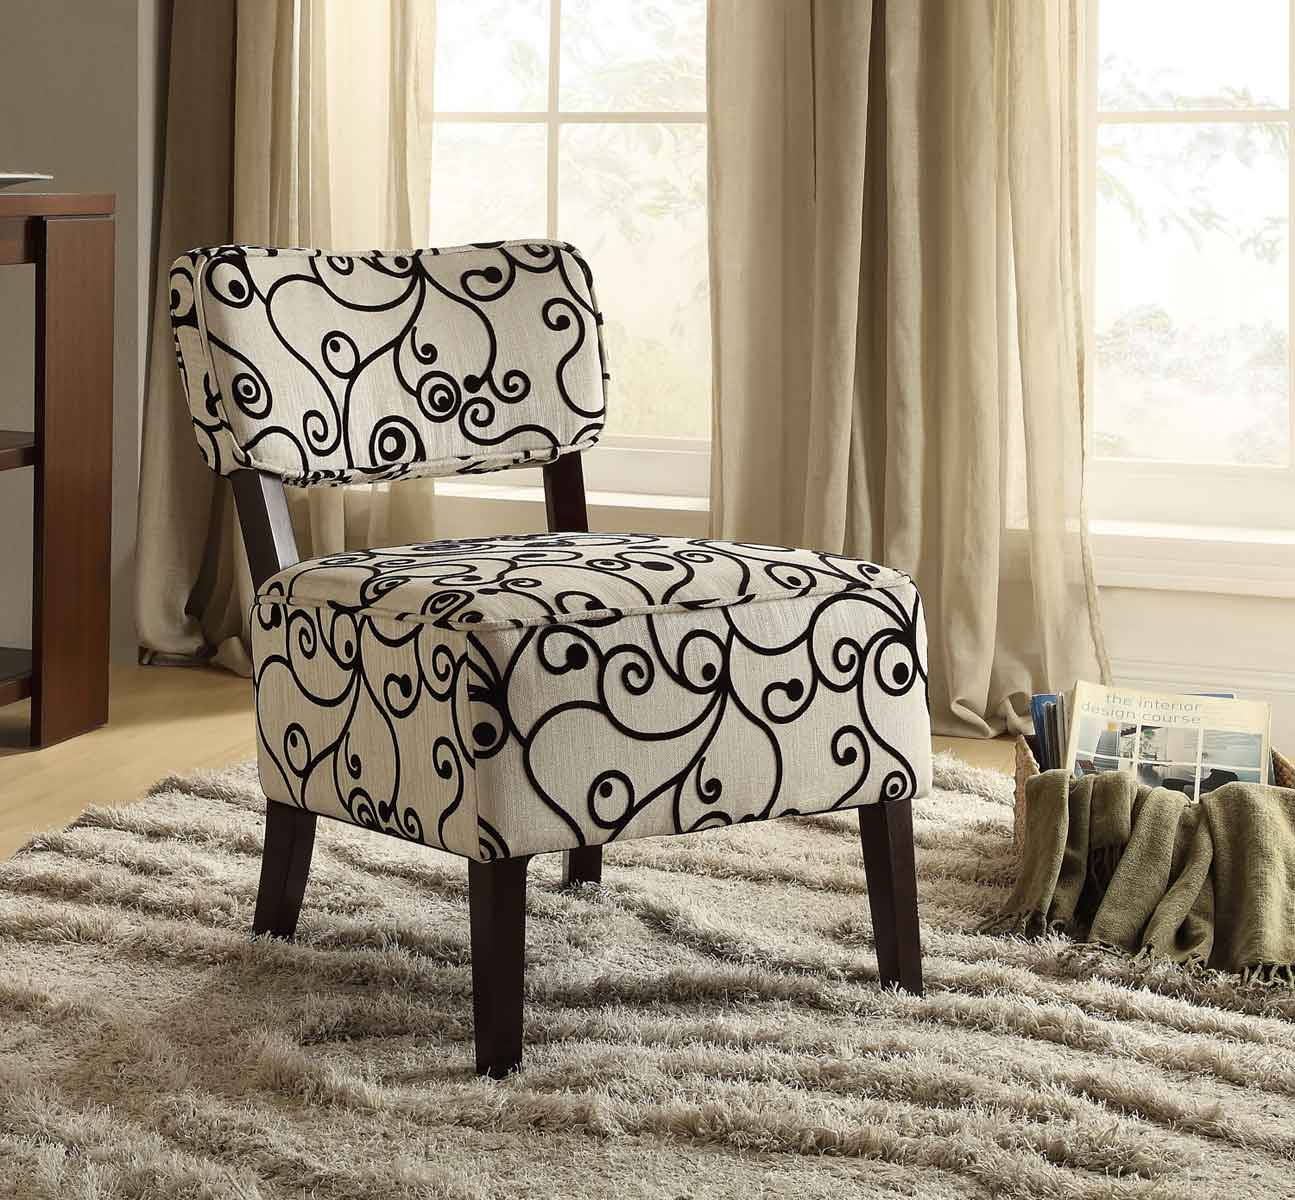 Homelegance Orson Accent Chair - Black Swirl Fabric